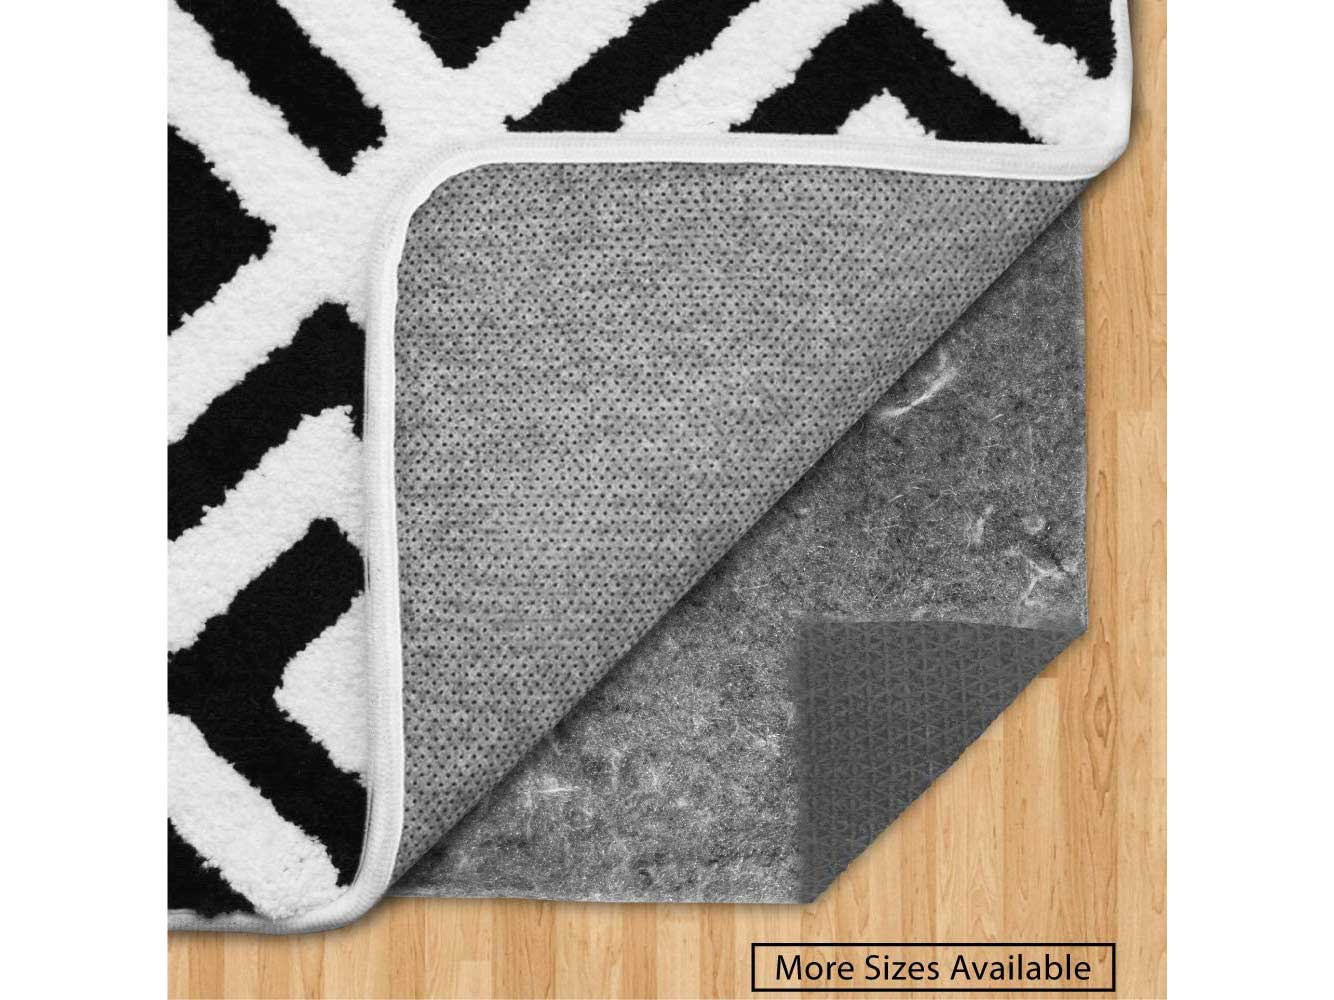 Gorilla Grip Original Felt and Rubber Underside Gripper Area Rug Pad .25 Inch Thick, 8x10 FT, for Hardwood and Hard Floor, Plush Cushion Support Pads for Under Carpet Rugs, Protects Floor